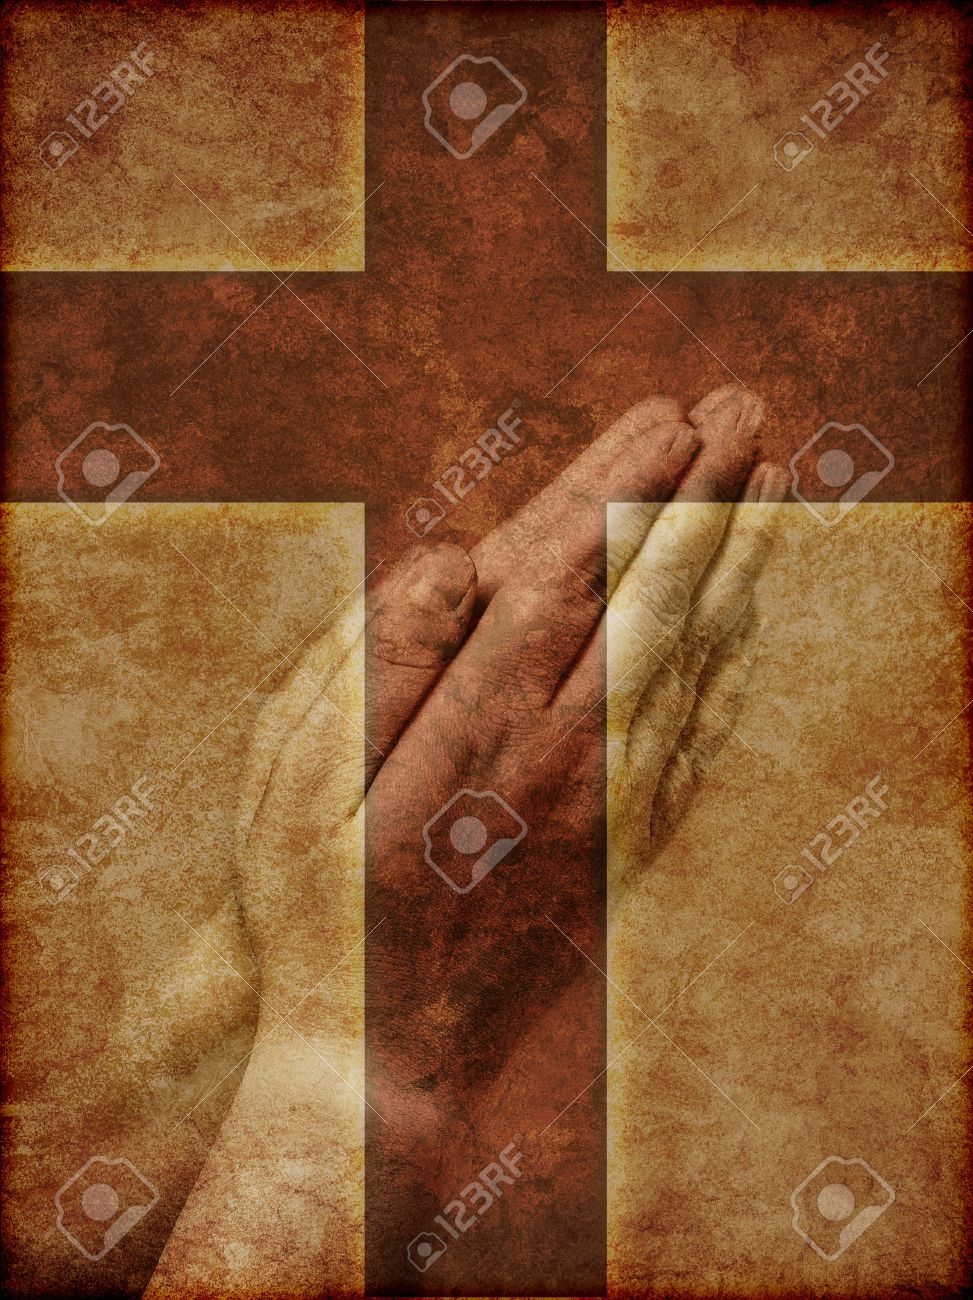 Praying Hands Superimposed over Christian Cross - textured illustration. - 7633179